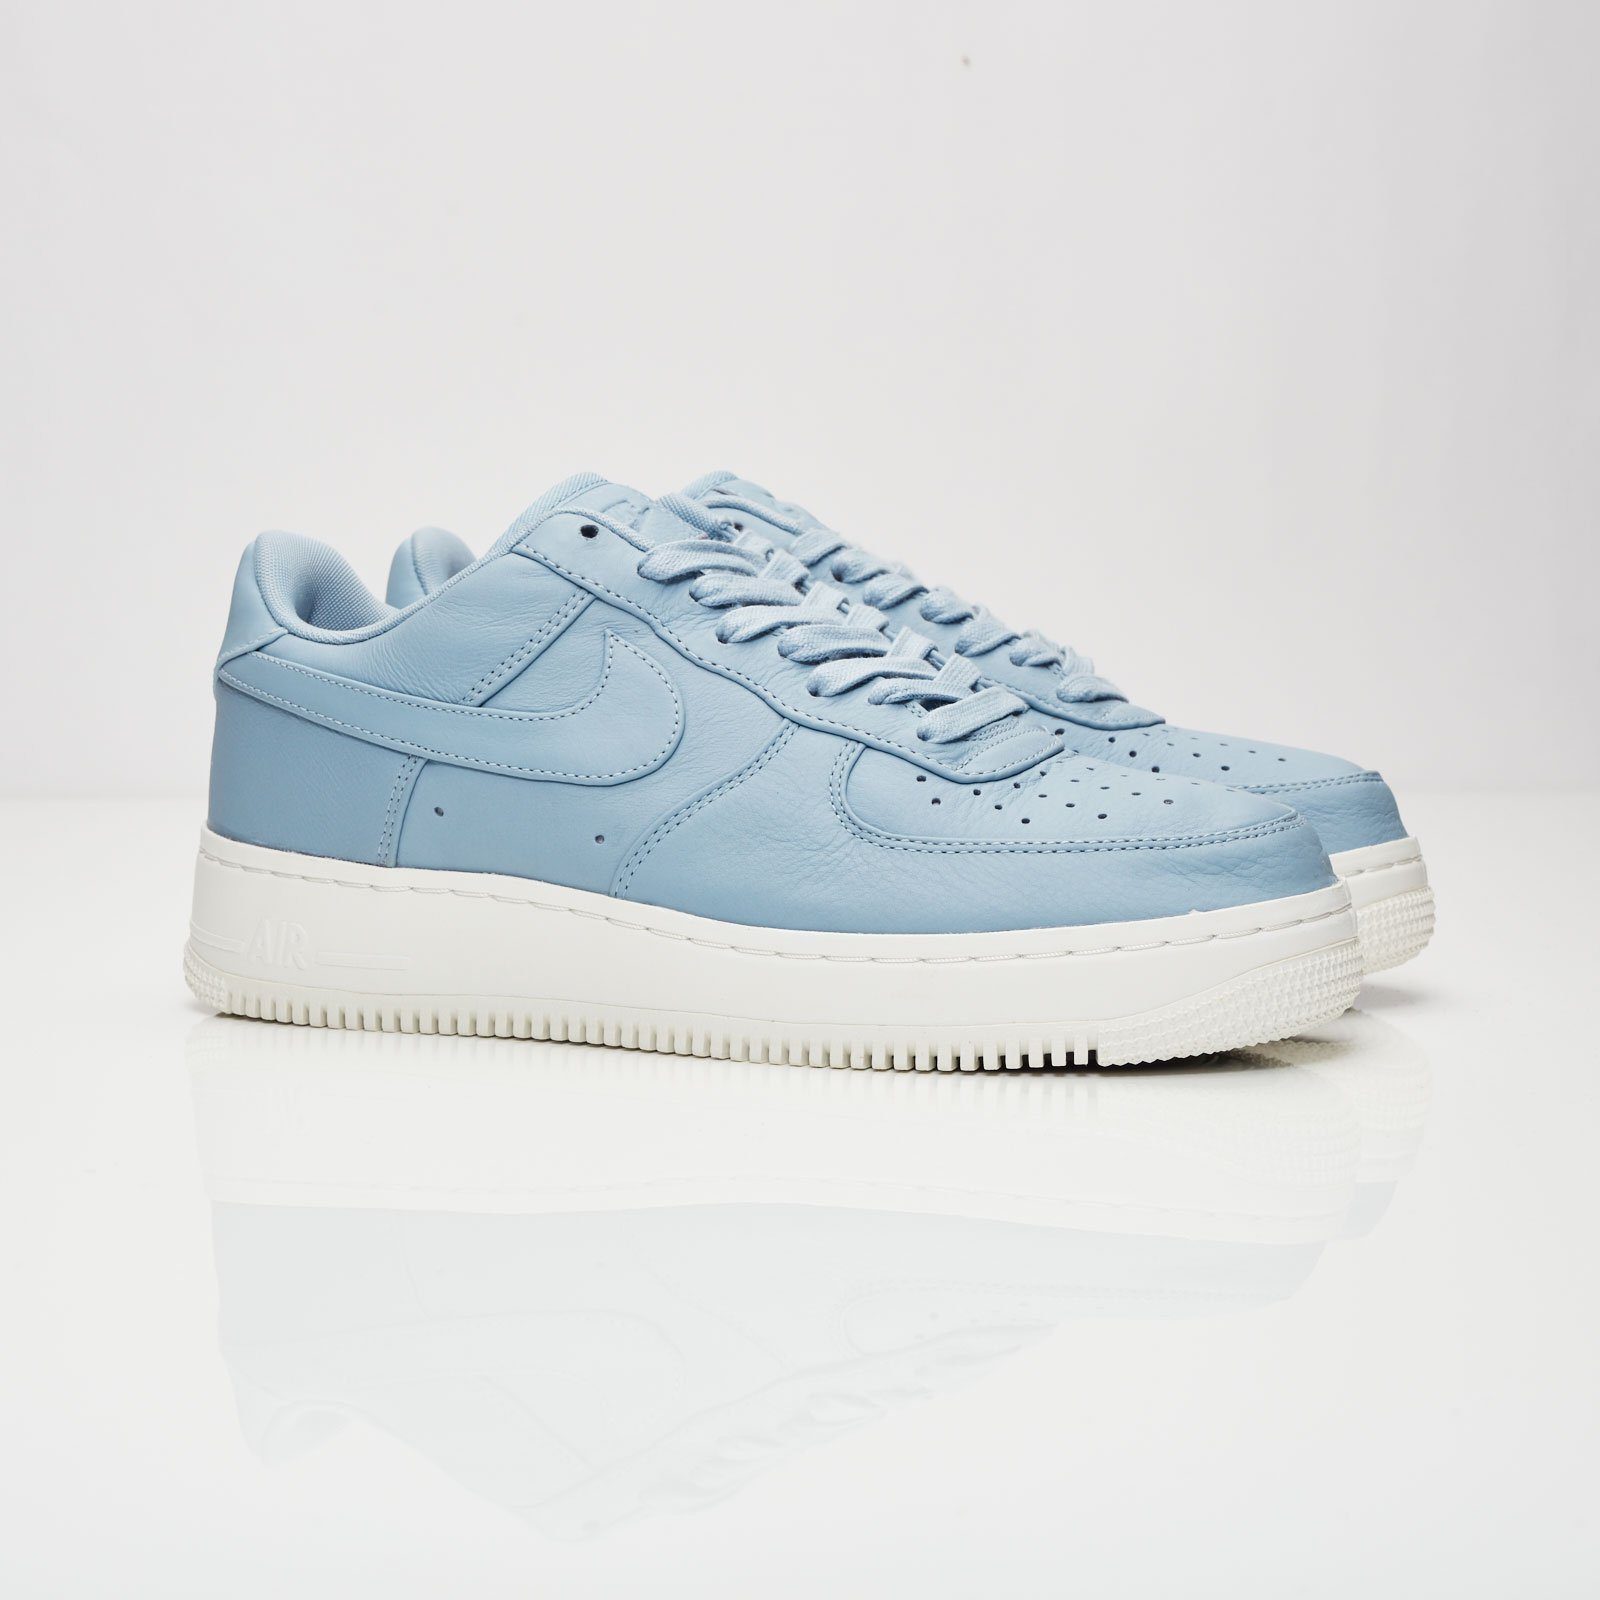 new style 13281 14aa8 ... discount code for nike air force 1 low b6874 357b3 ...